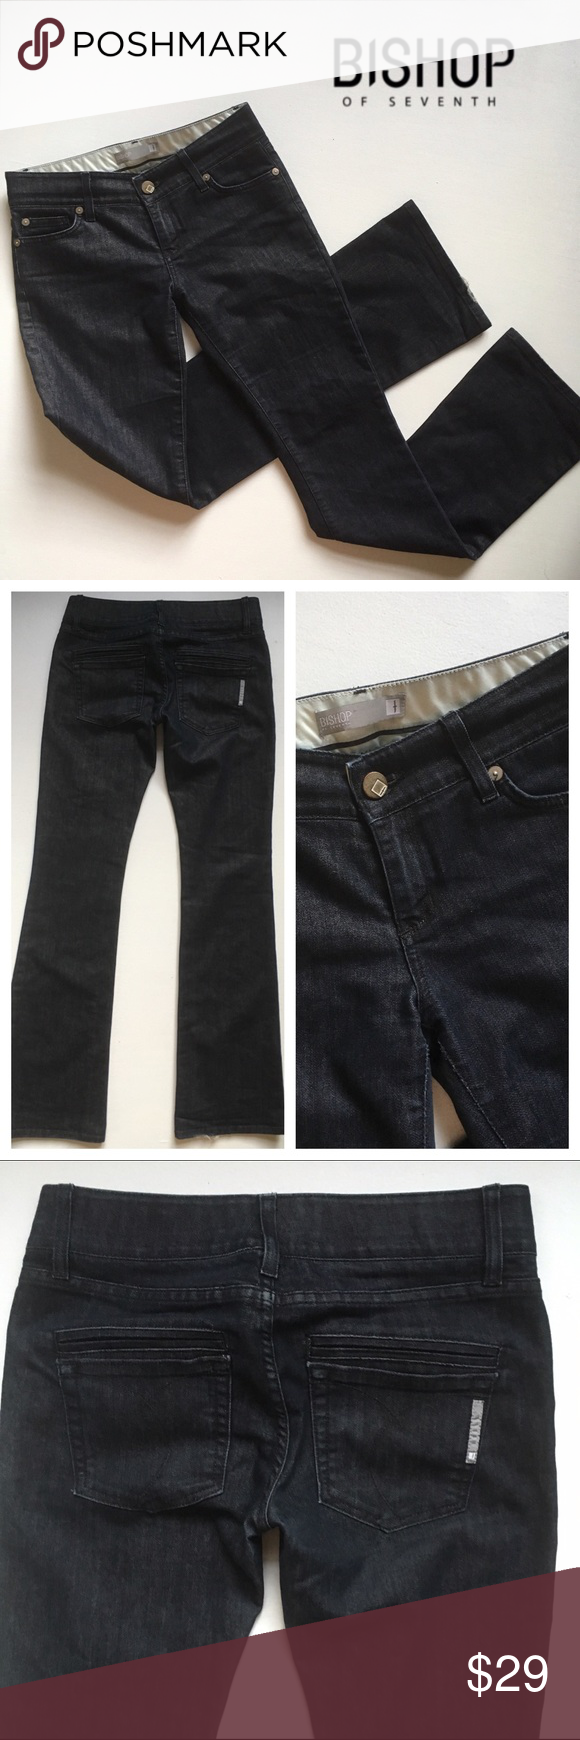 """Bishop of Seventh Boot cut Dark wash Denim 28 Gorgeous hand-tailored Bishop of Seventh Boot cut Dark wash Denim, made in Lis Angeles. Measurements: 8"""" rise, 35"""" inseam, 15.75"""" flat across waist. Please not some wear on the hems, as shown in final photo. 🎀Search my closet for your size to bundle and save 20% 3+ items! 🎀Reasonable Offers always Welcome!🎀 Bishop of Seventh Pants Boot Cut & Flare"""